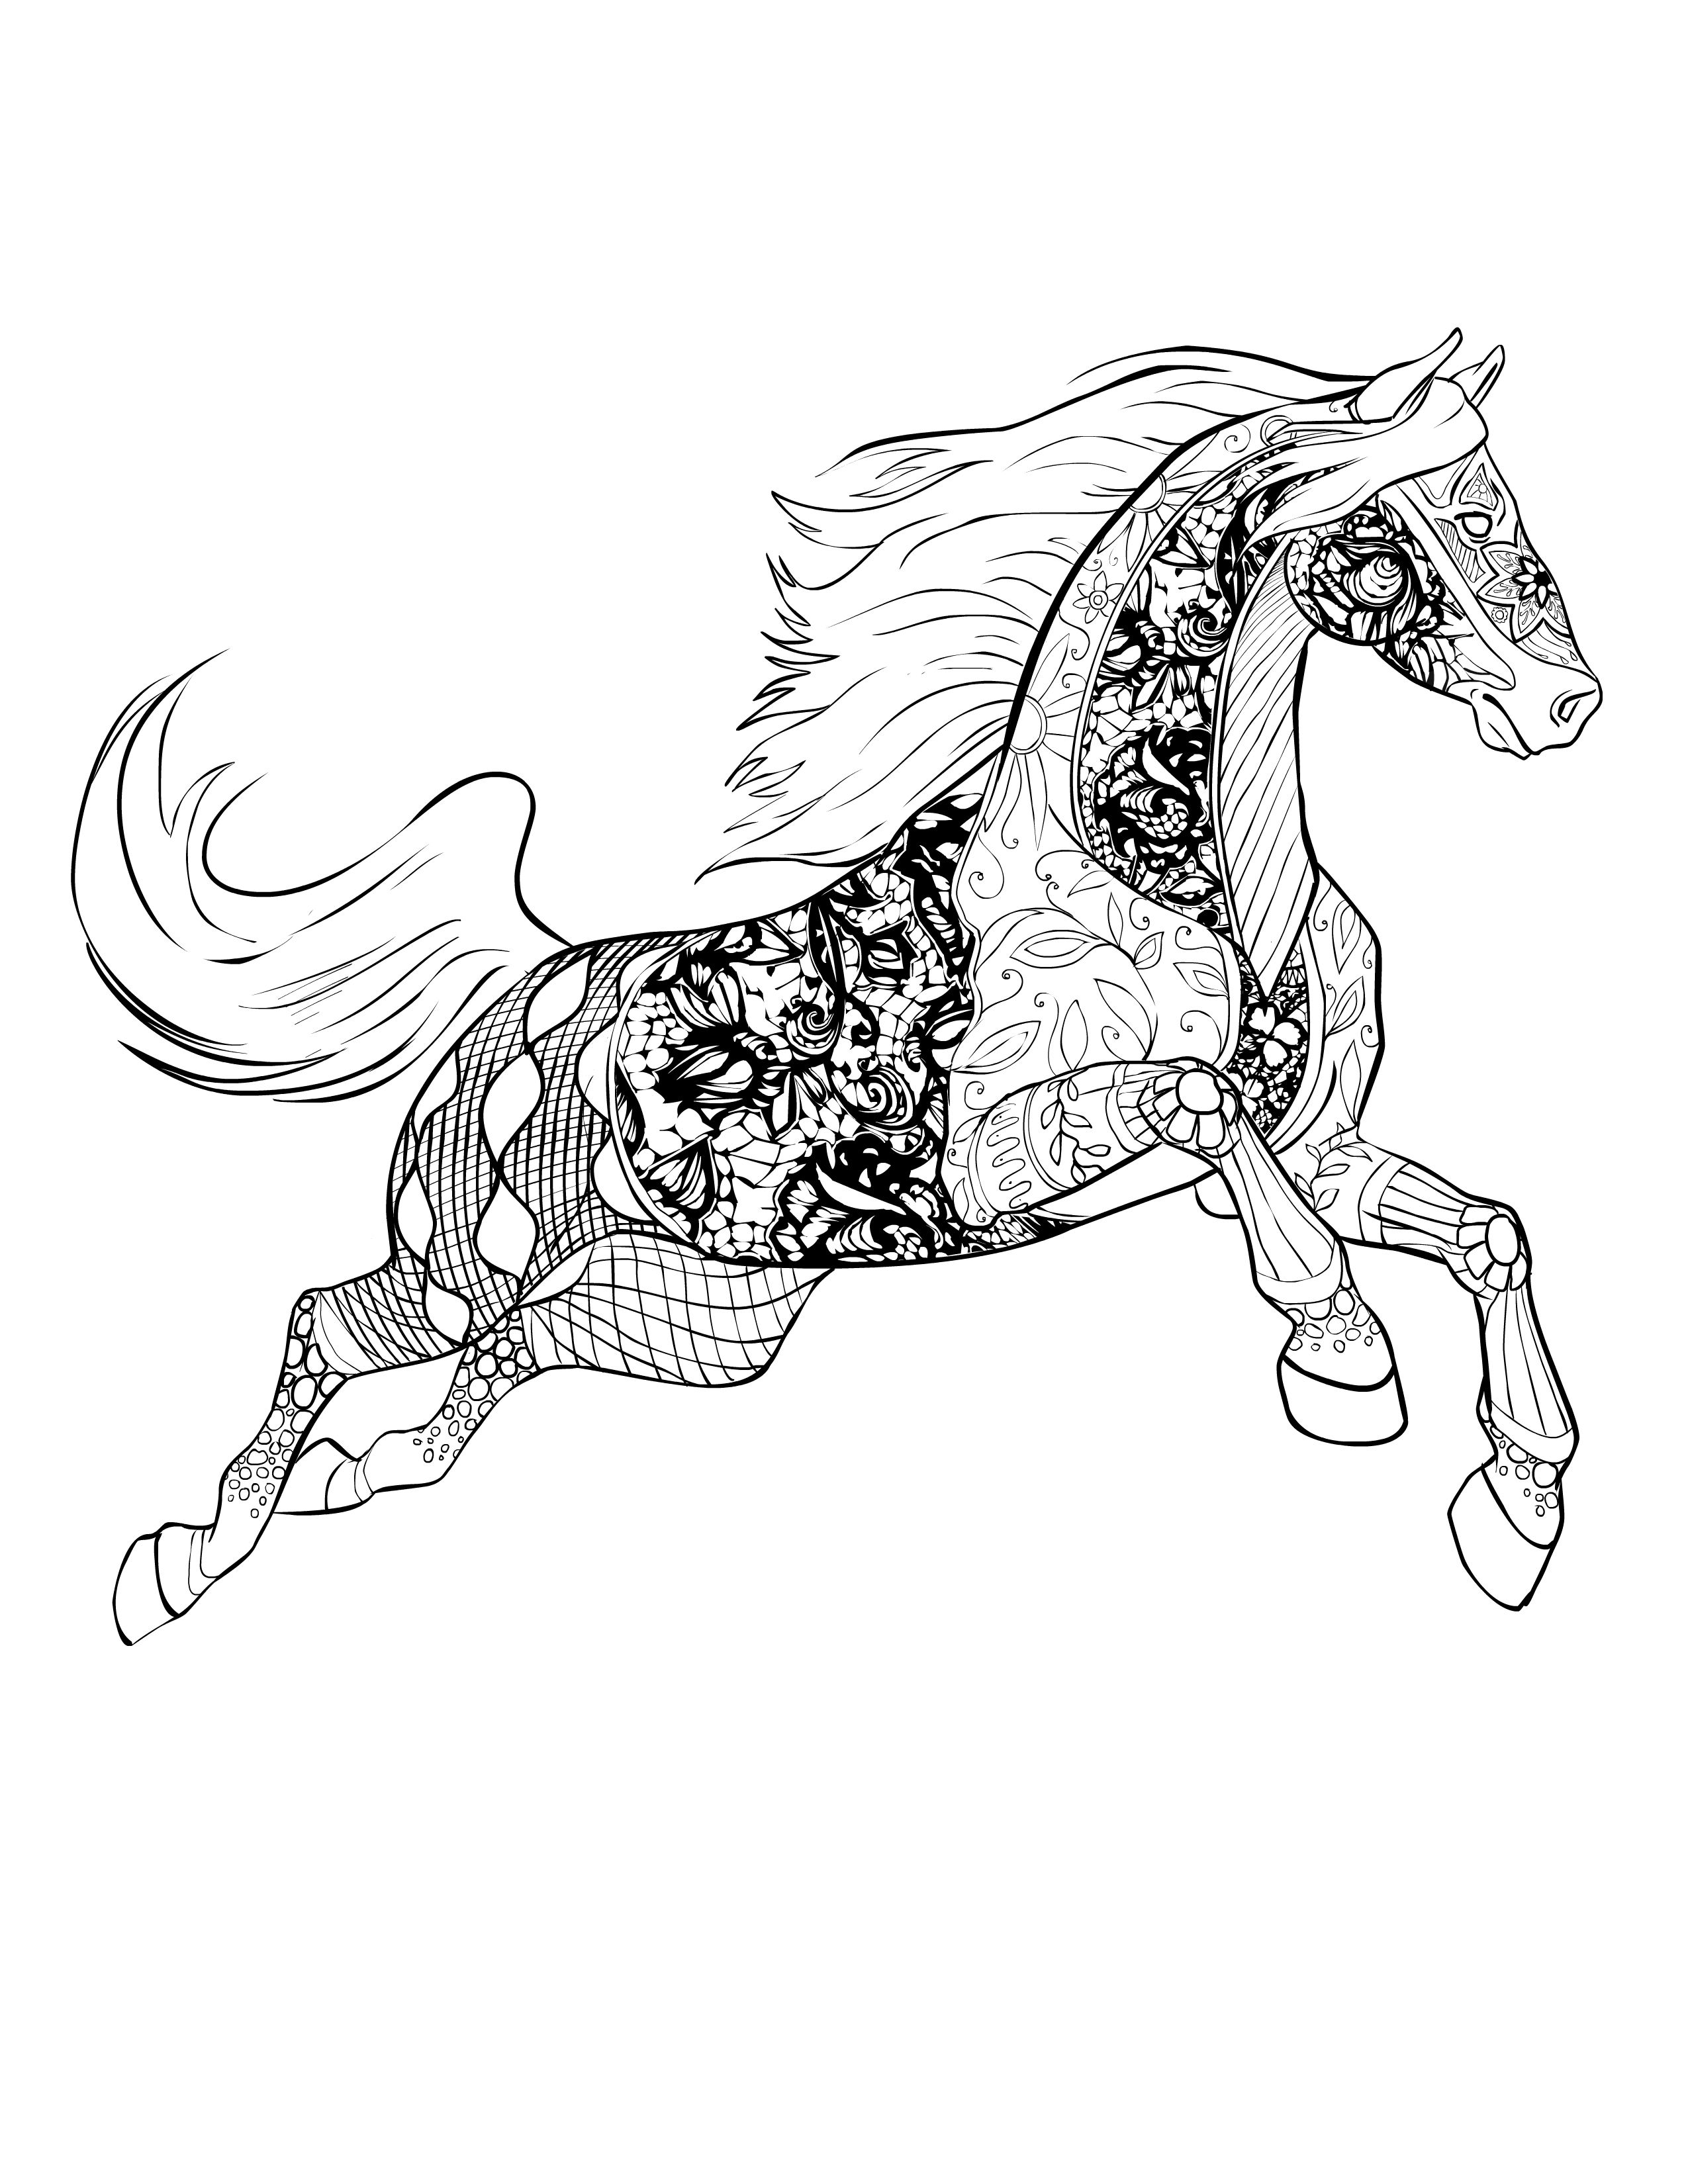 Horse Free Download Selah Works Davlin Publishing Adultcoloring